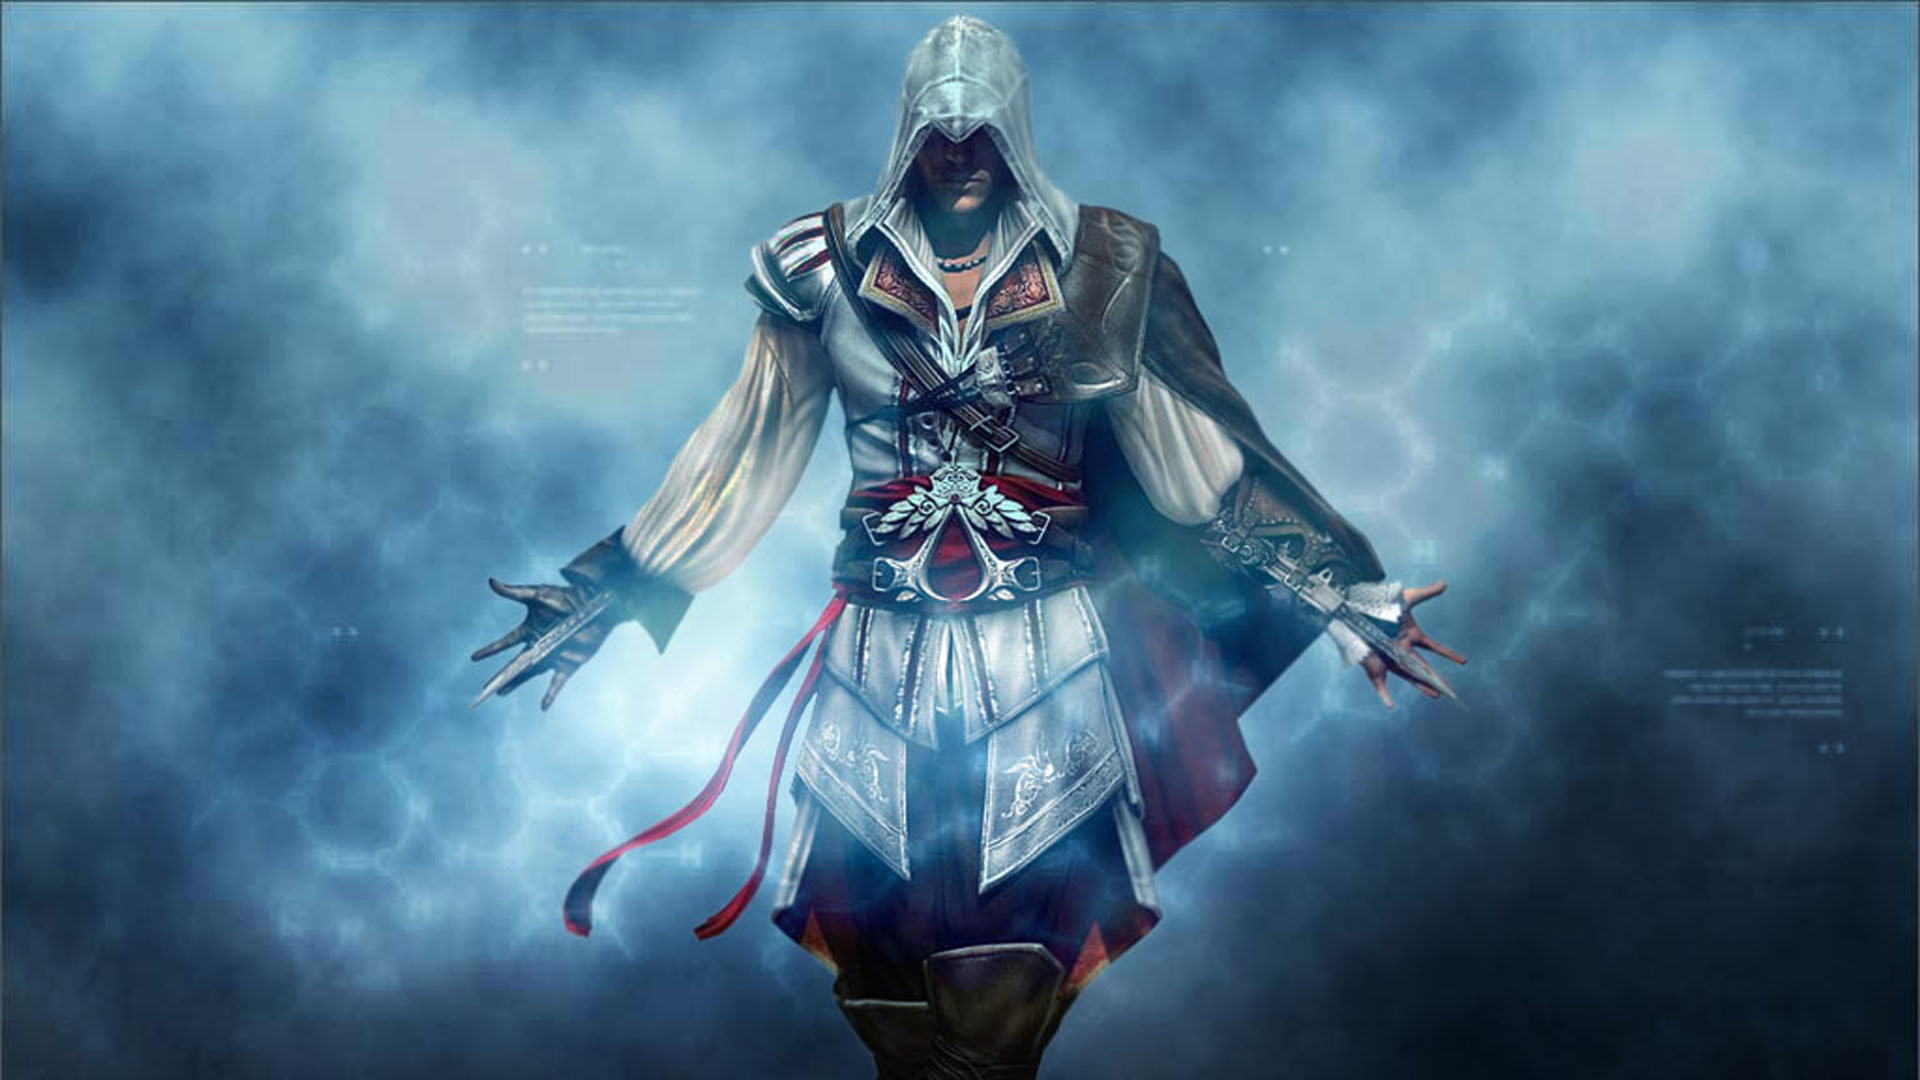 Download Hd 1080p Ezio Assassin S Creed Desktop Background Id